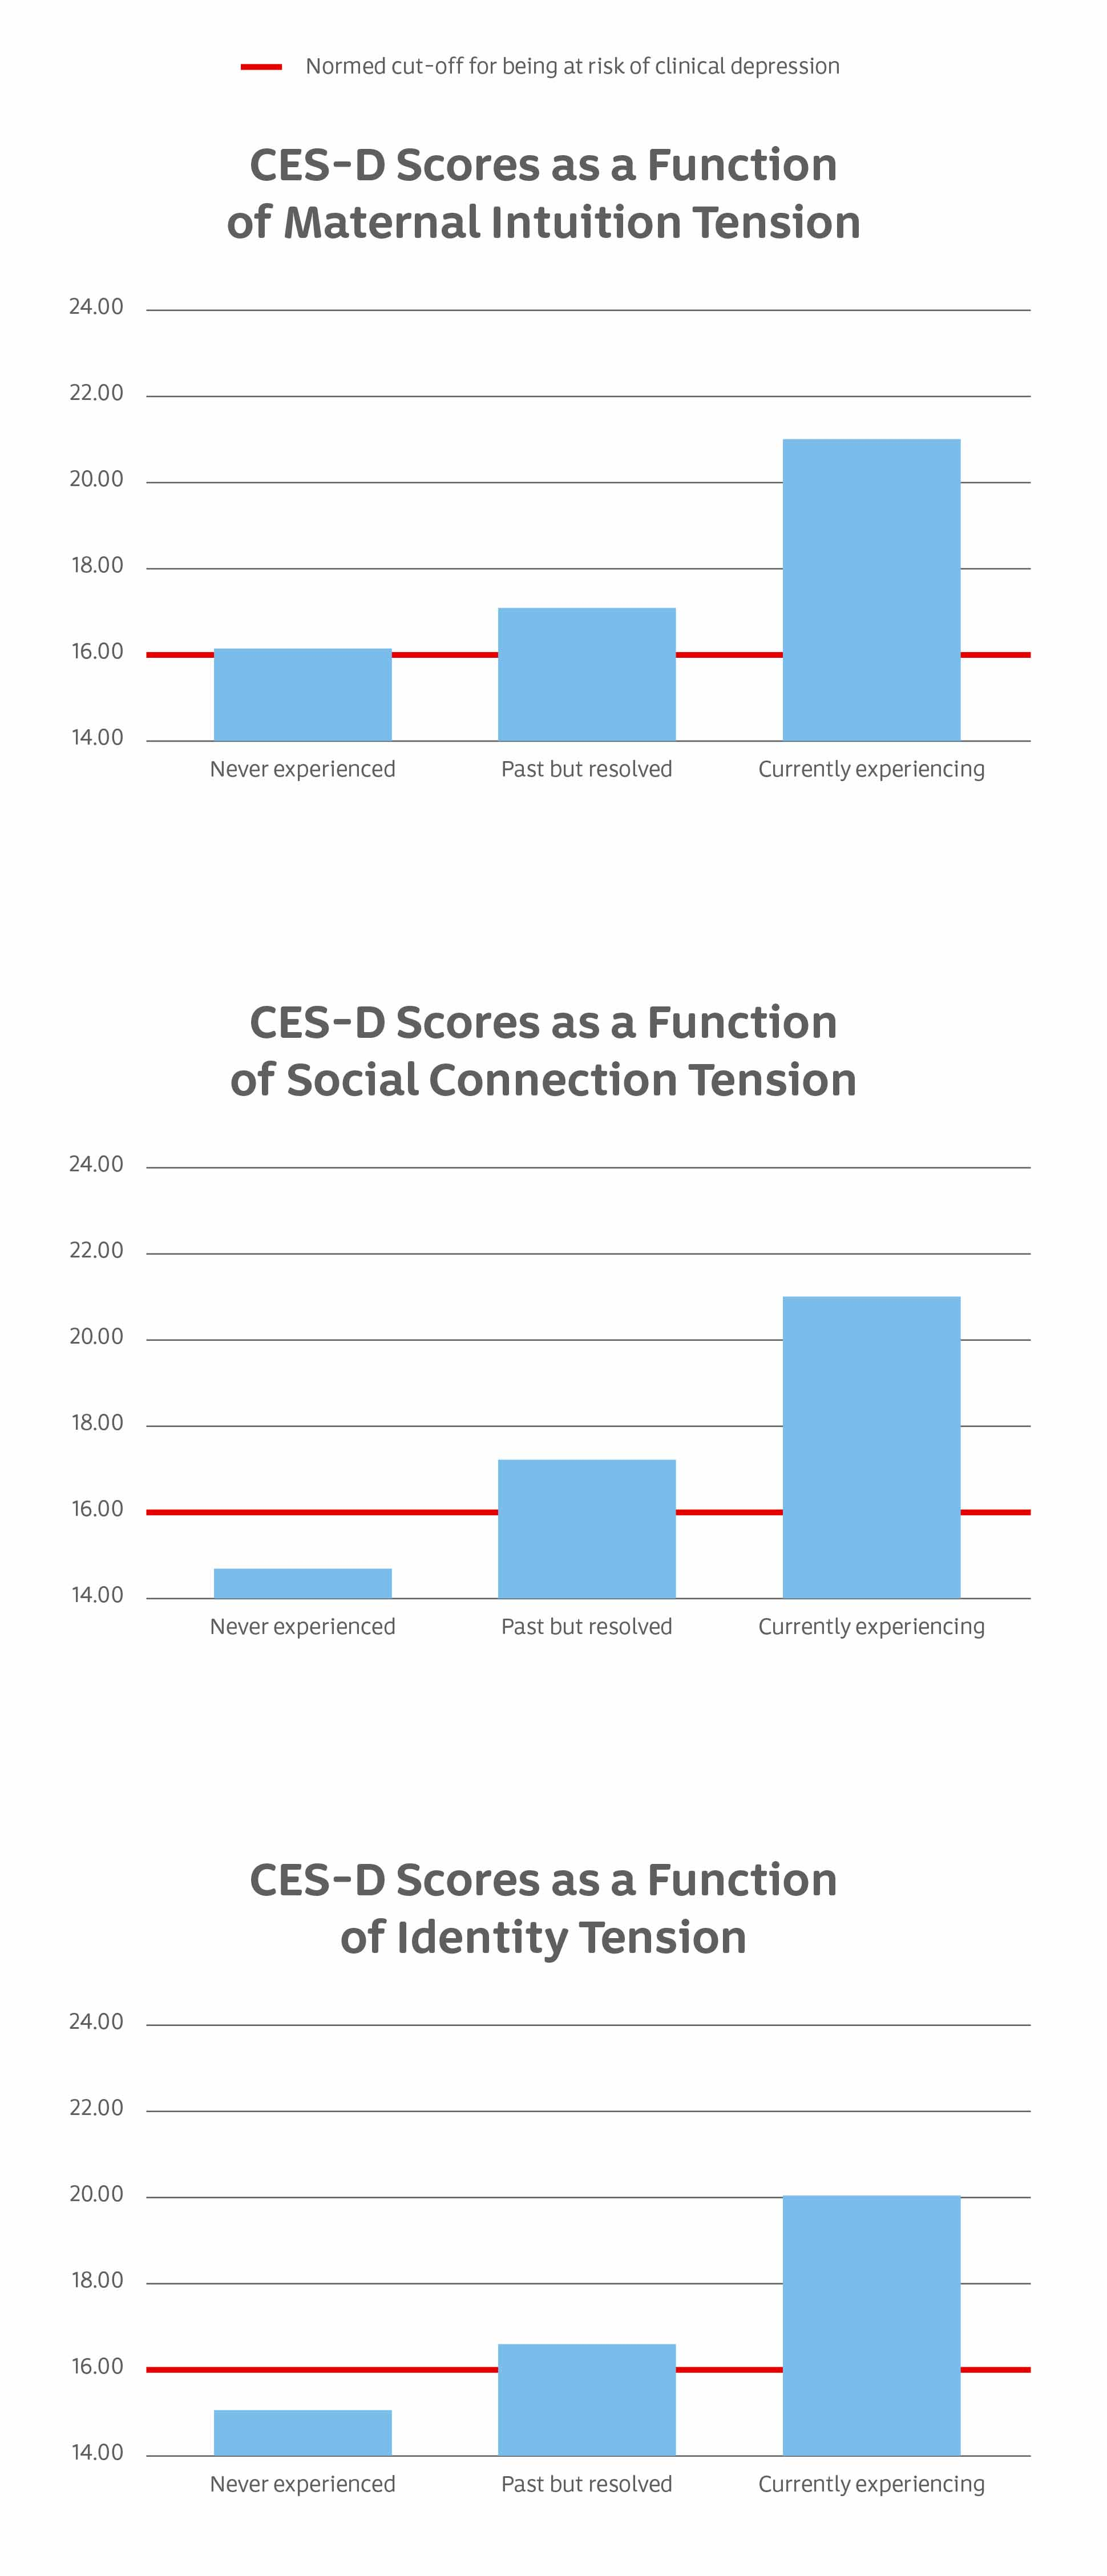 CES-D and maternal intuition tension chart and CES-D and social connection tension chart